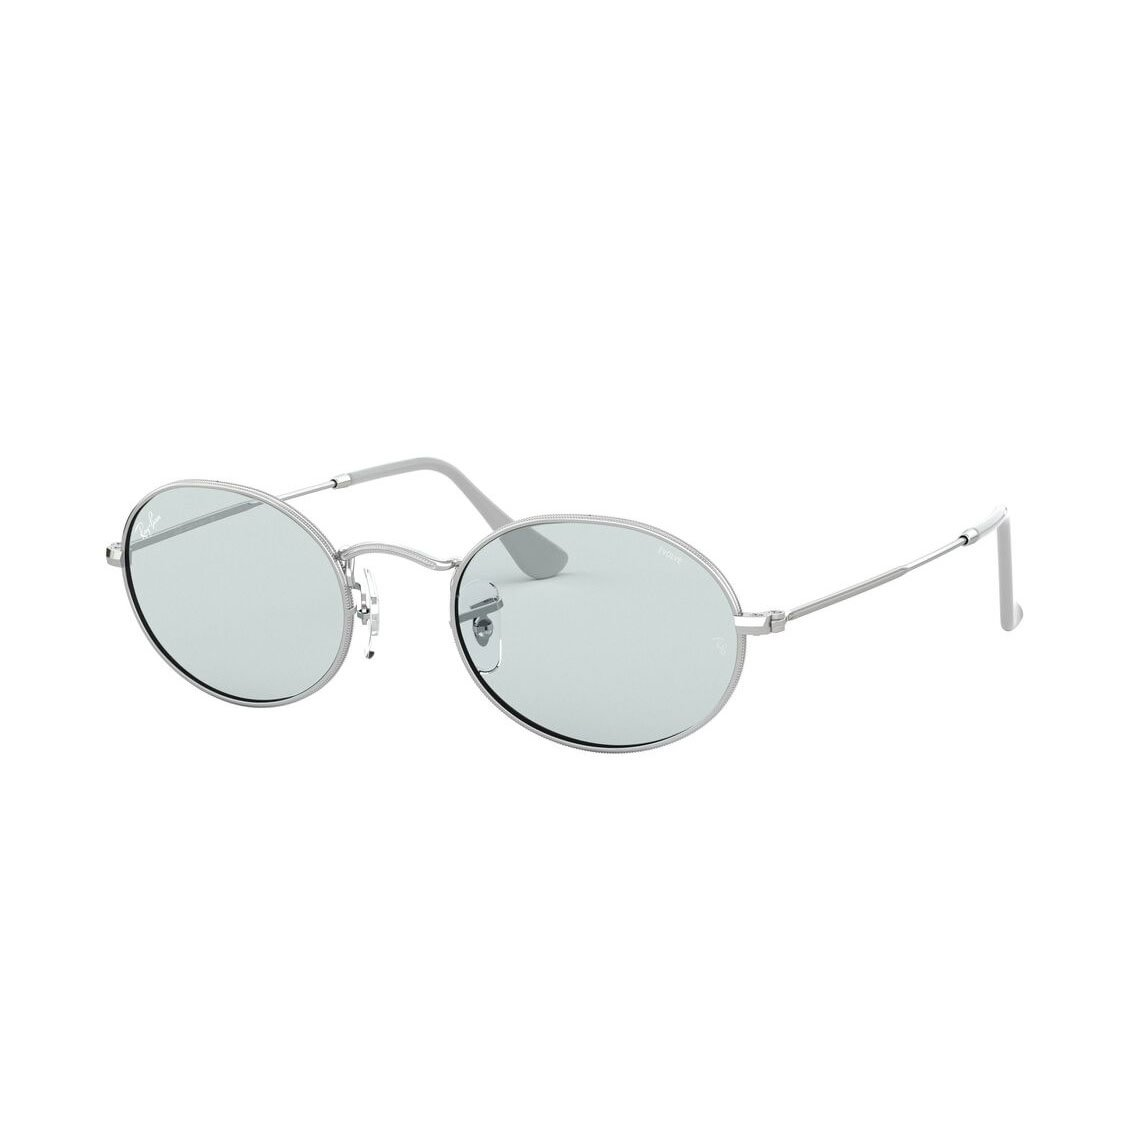 Ray-Ban Oval Solid Evolve RB3547 003/T3 5121